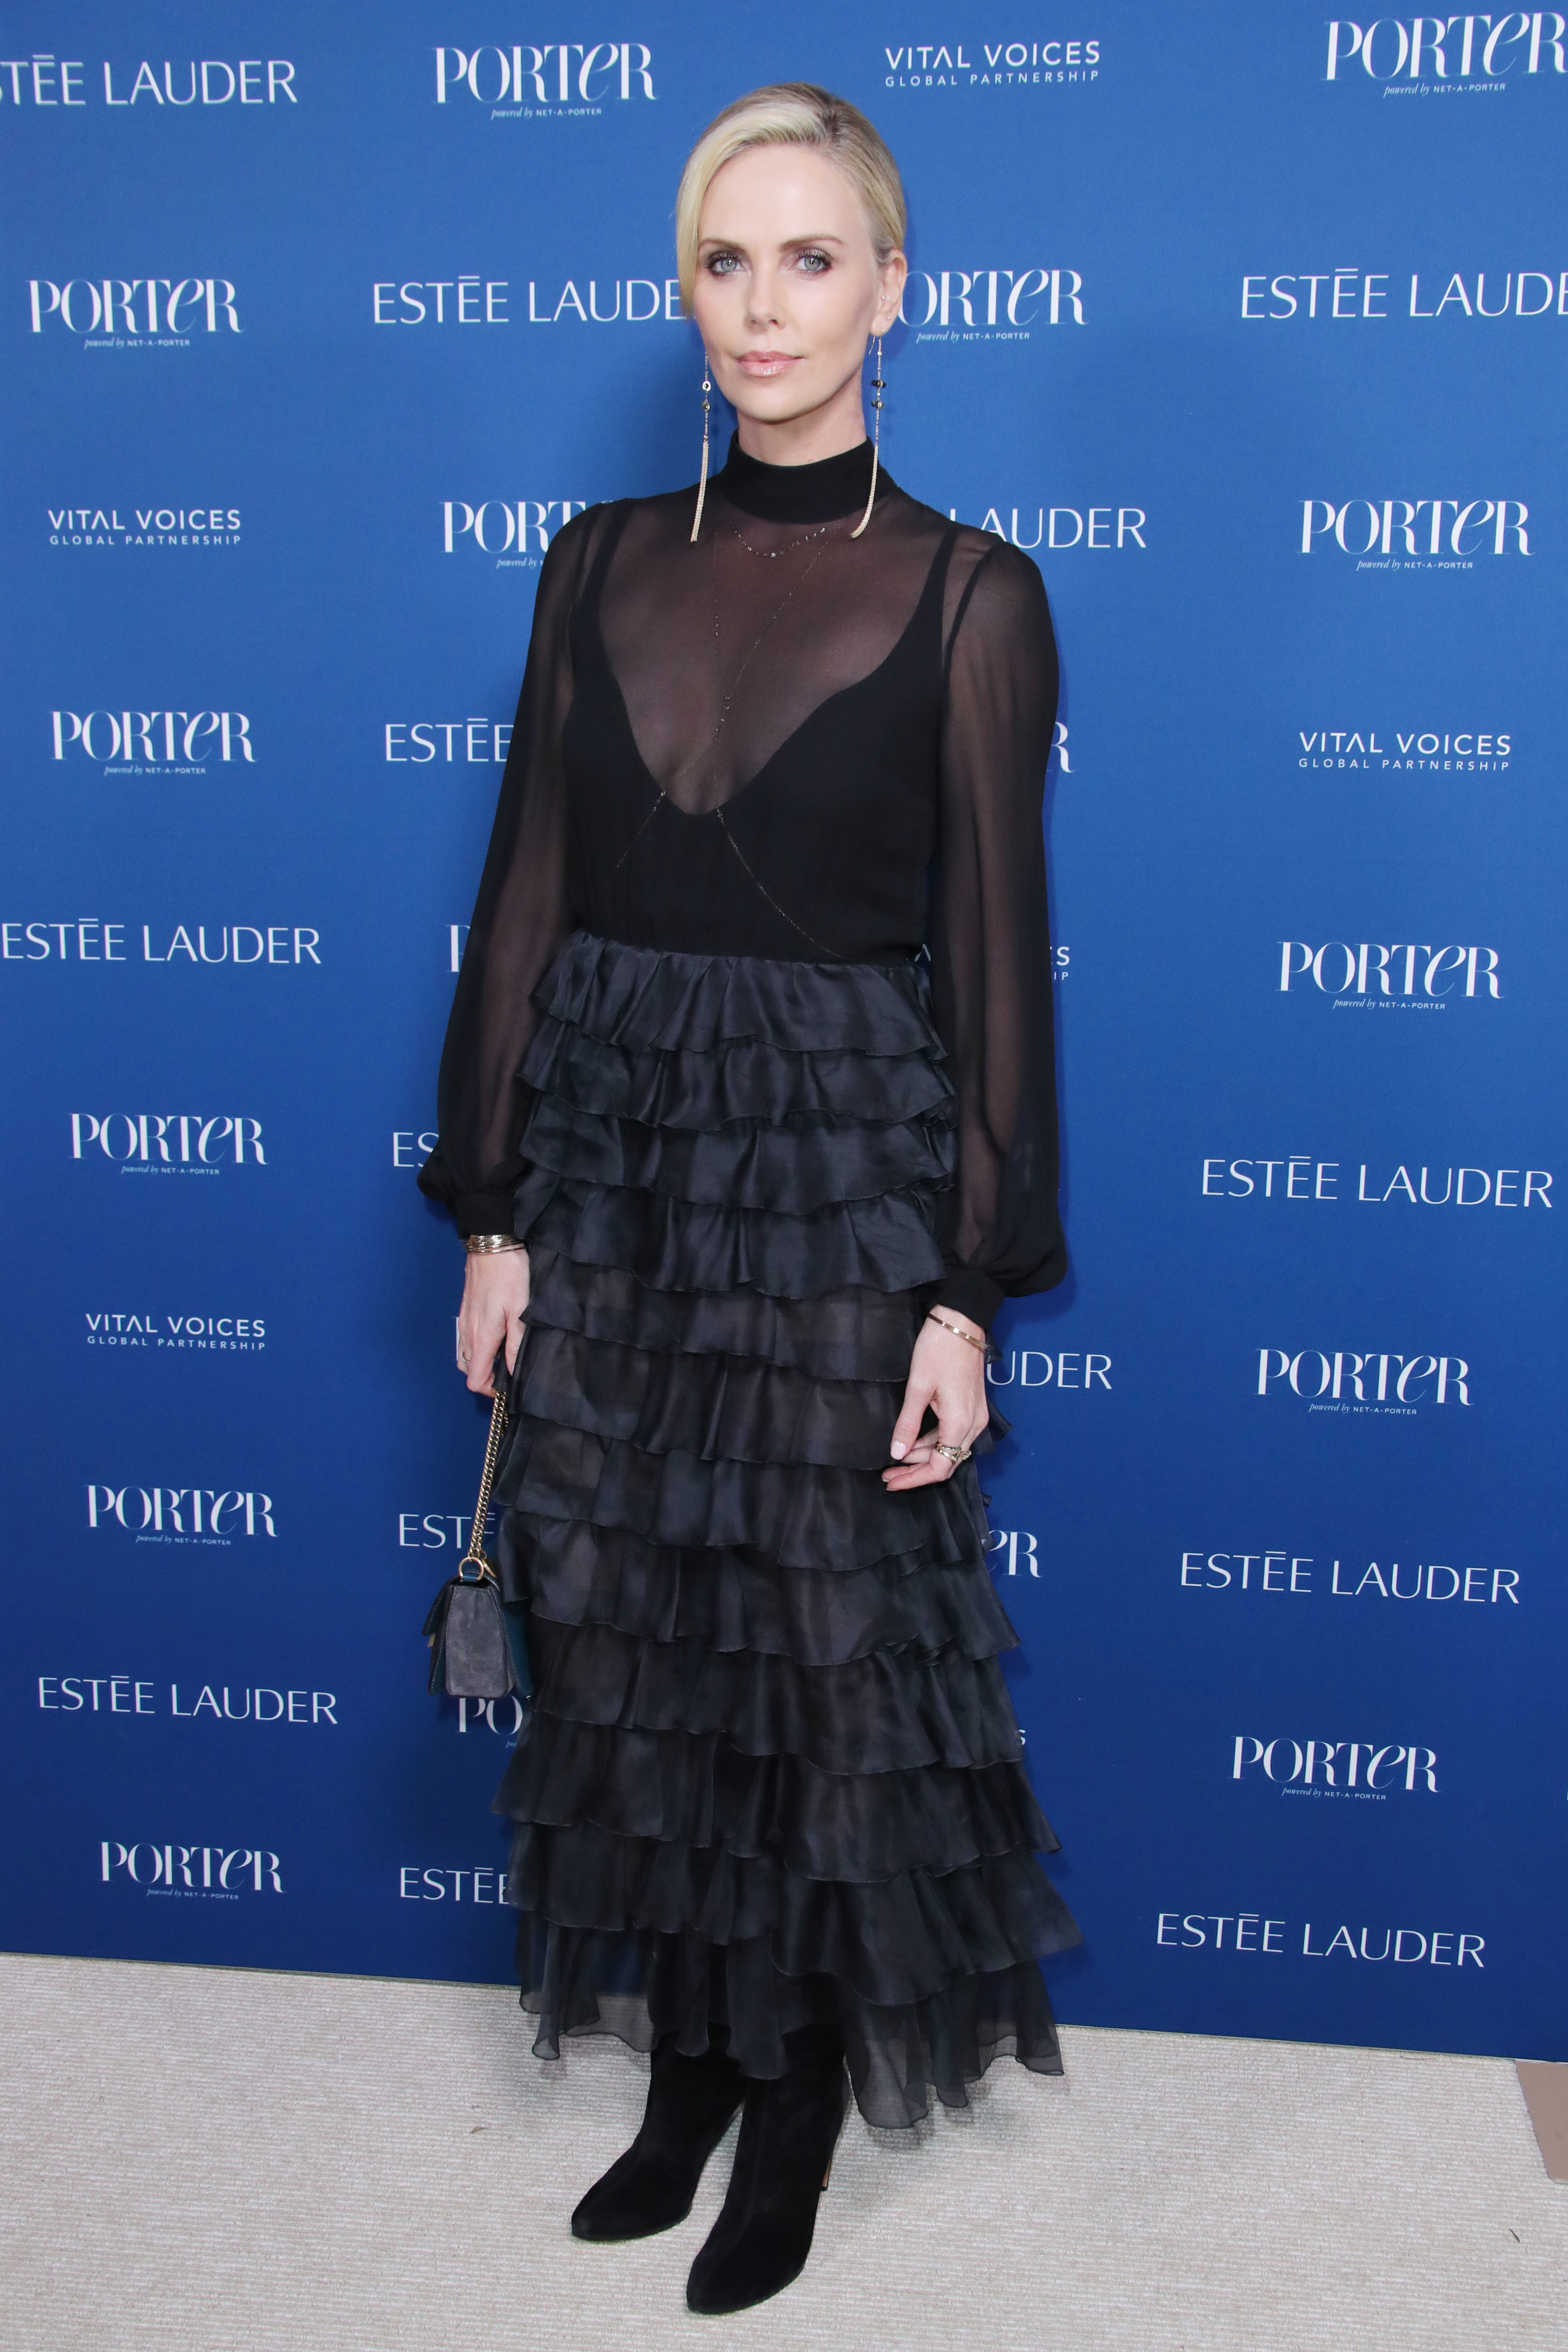 Charlize Theron attends the Porter's 3rd Annual Incredible Women Gala in Los Angeles on Oct. 9, 2018.